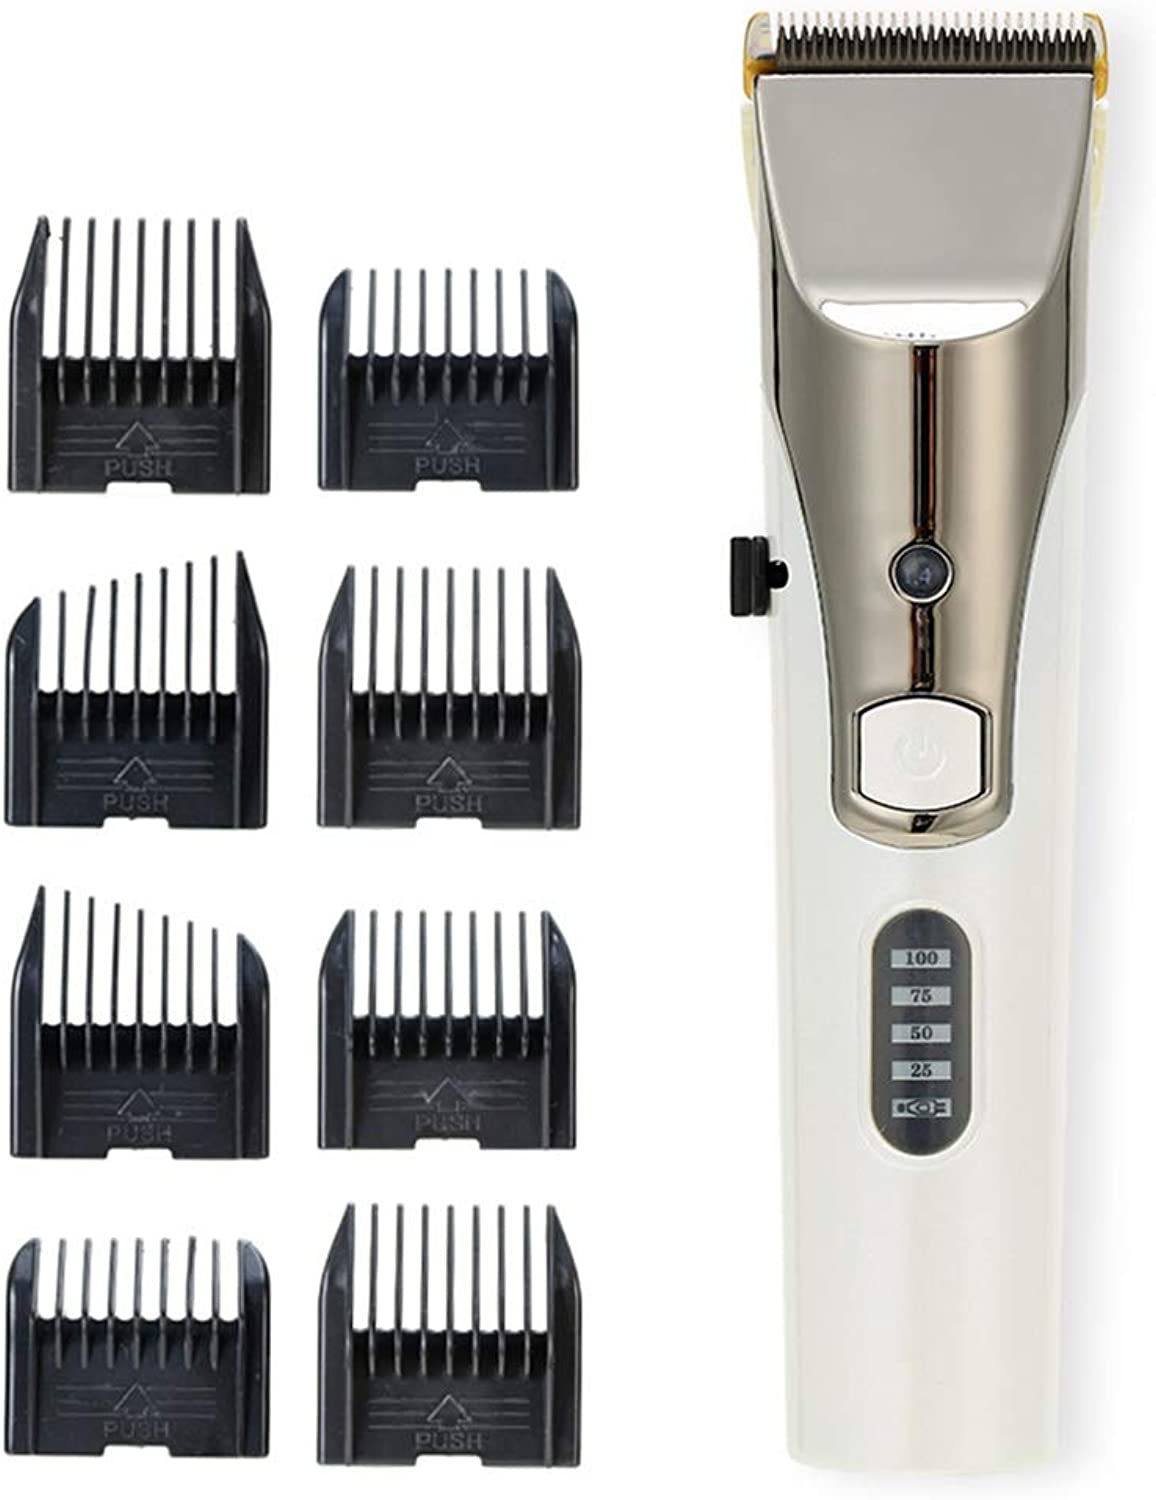 MZP Corded Dog Clipper Set 5Speed Low Noise Vibration Pet Grooming Clippers HighPerformance Battery 4 H Work Time Stainless Steel Detachable Blade Easy to Use